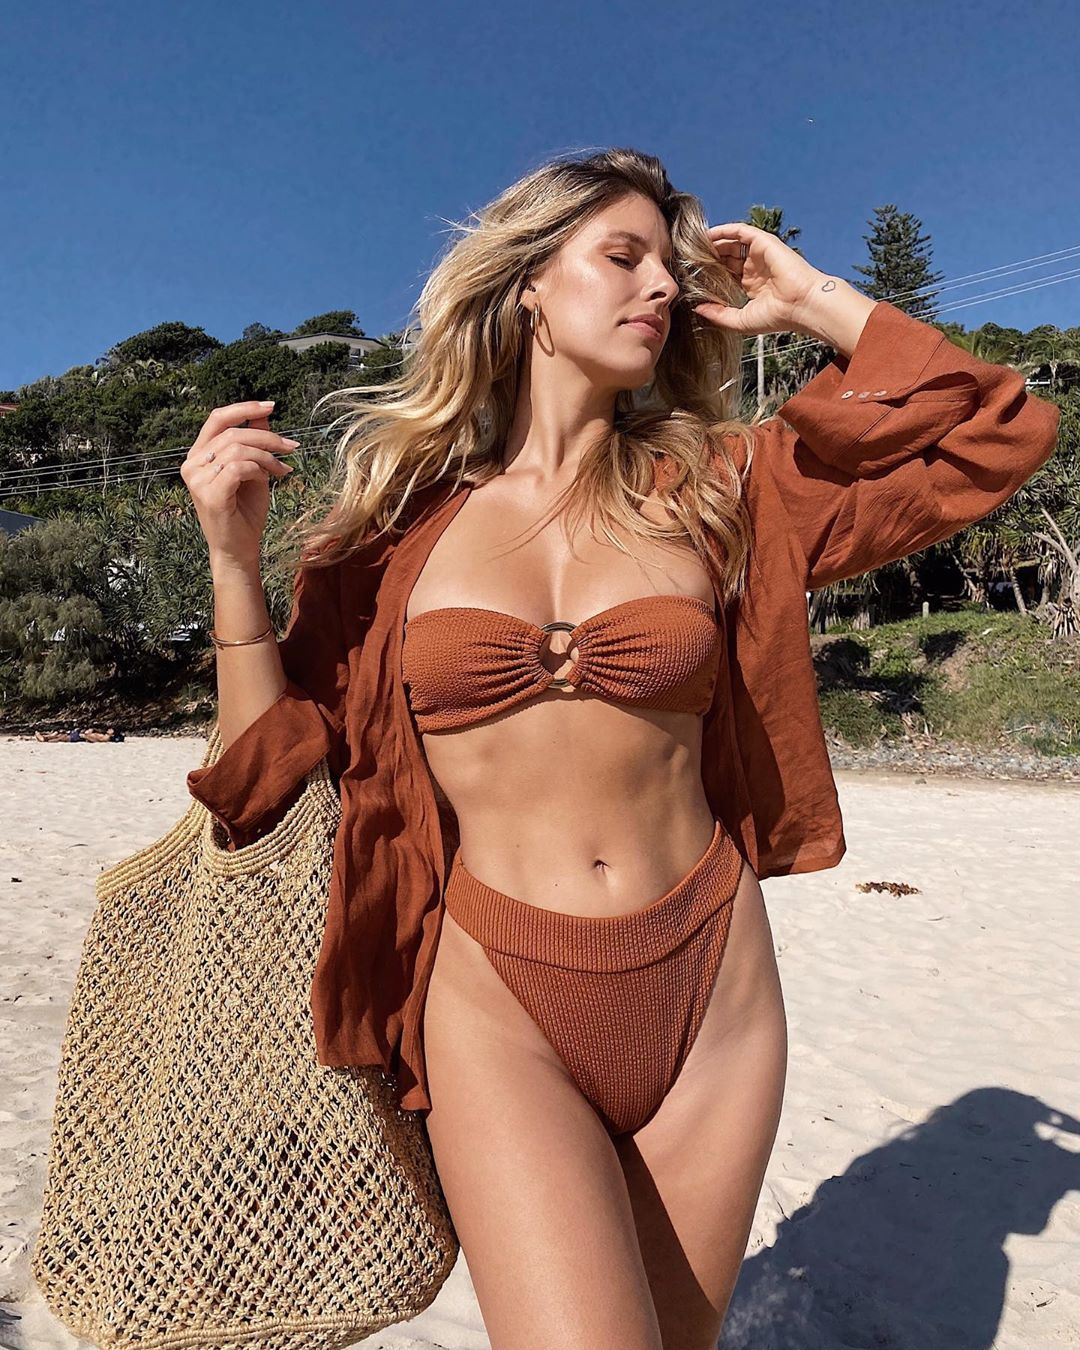 Natasha Oakley donning a Skimpy clay Monday Swimwear bikini top with metal detailing and a very low cut sweetheart neckline